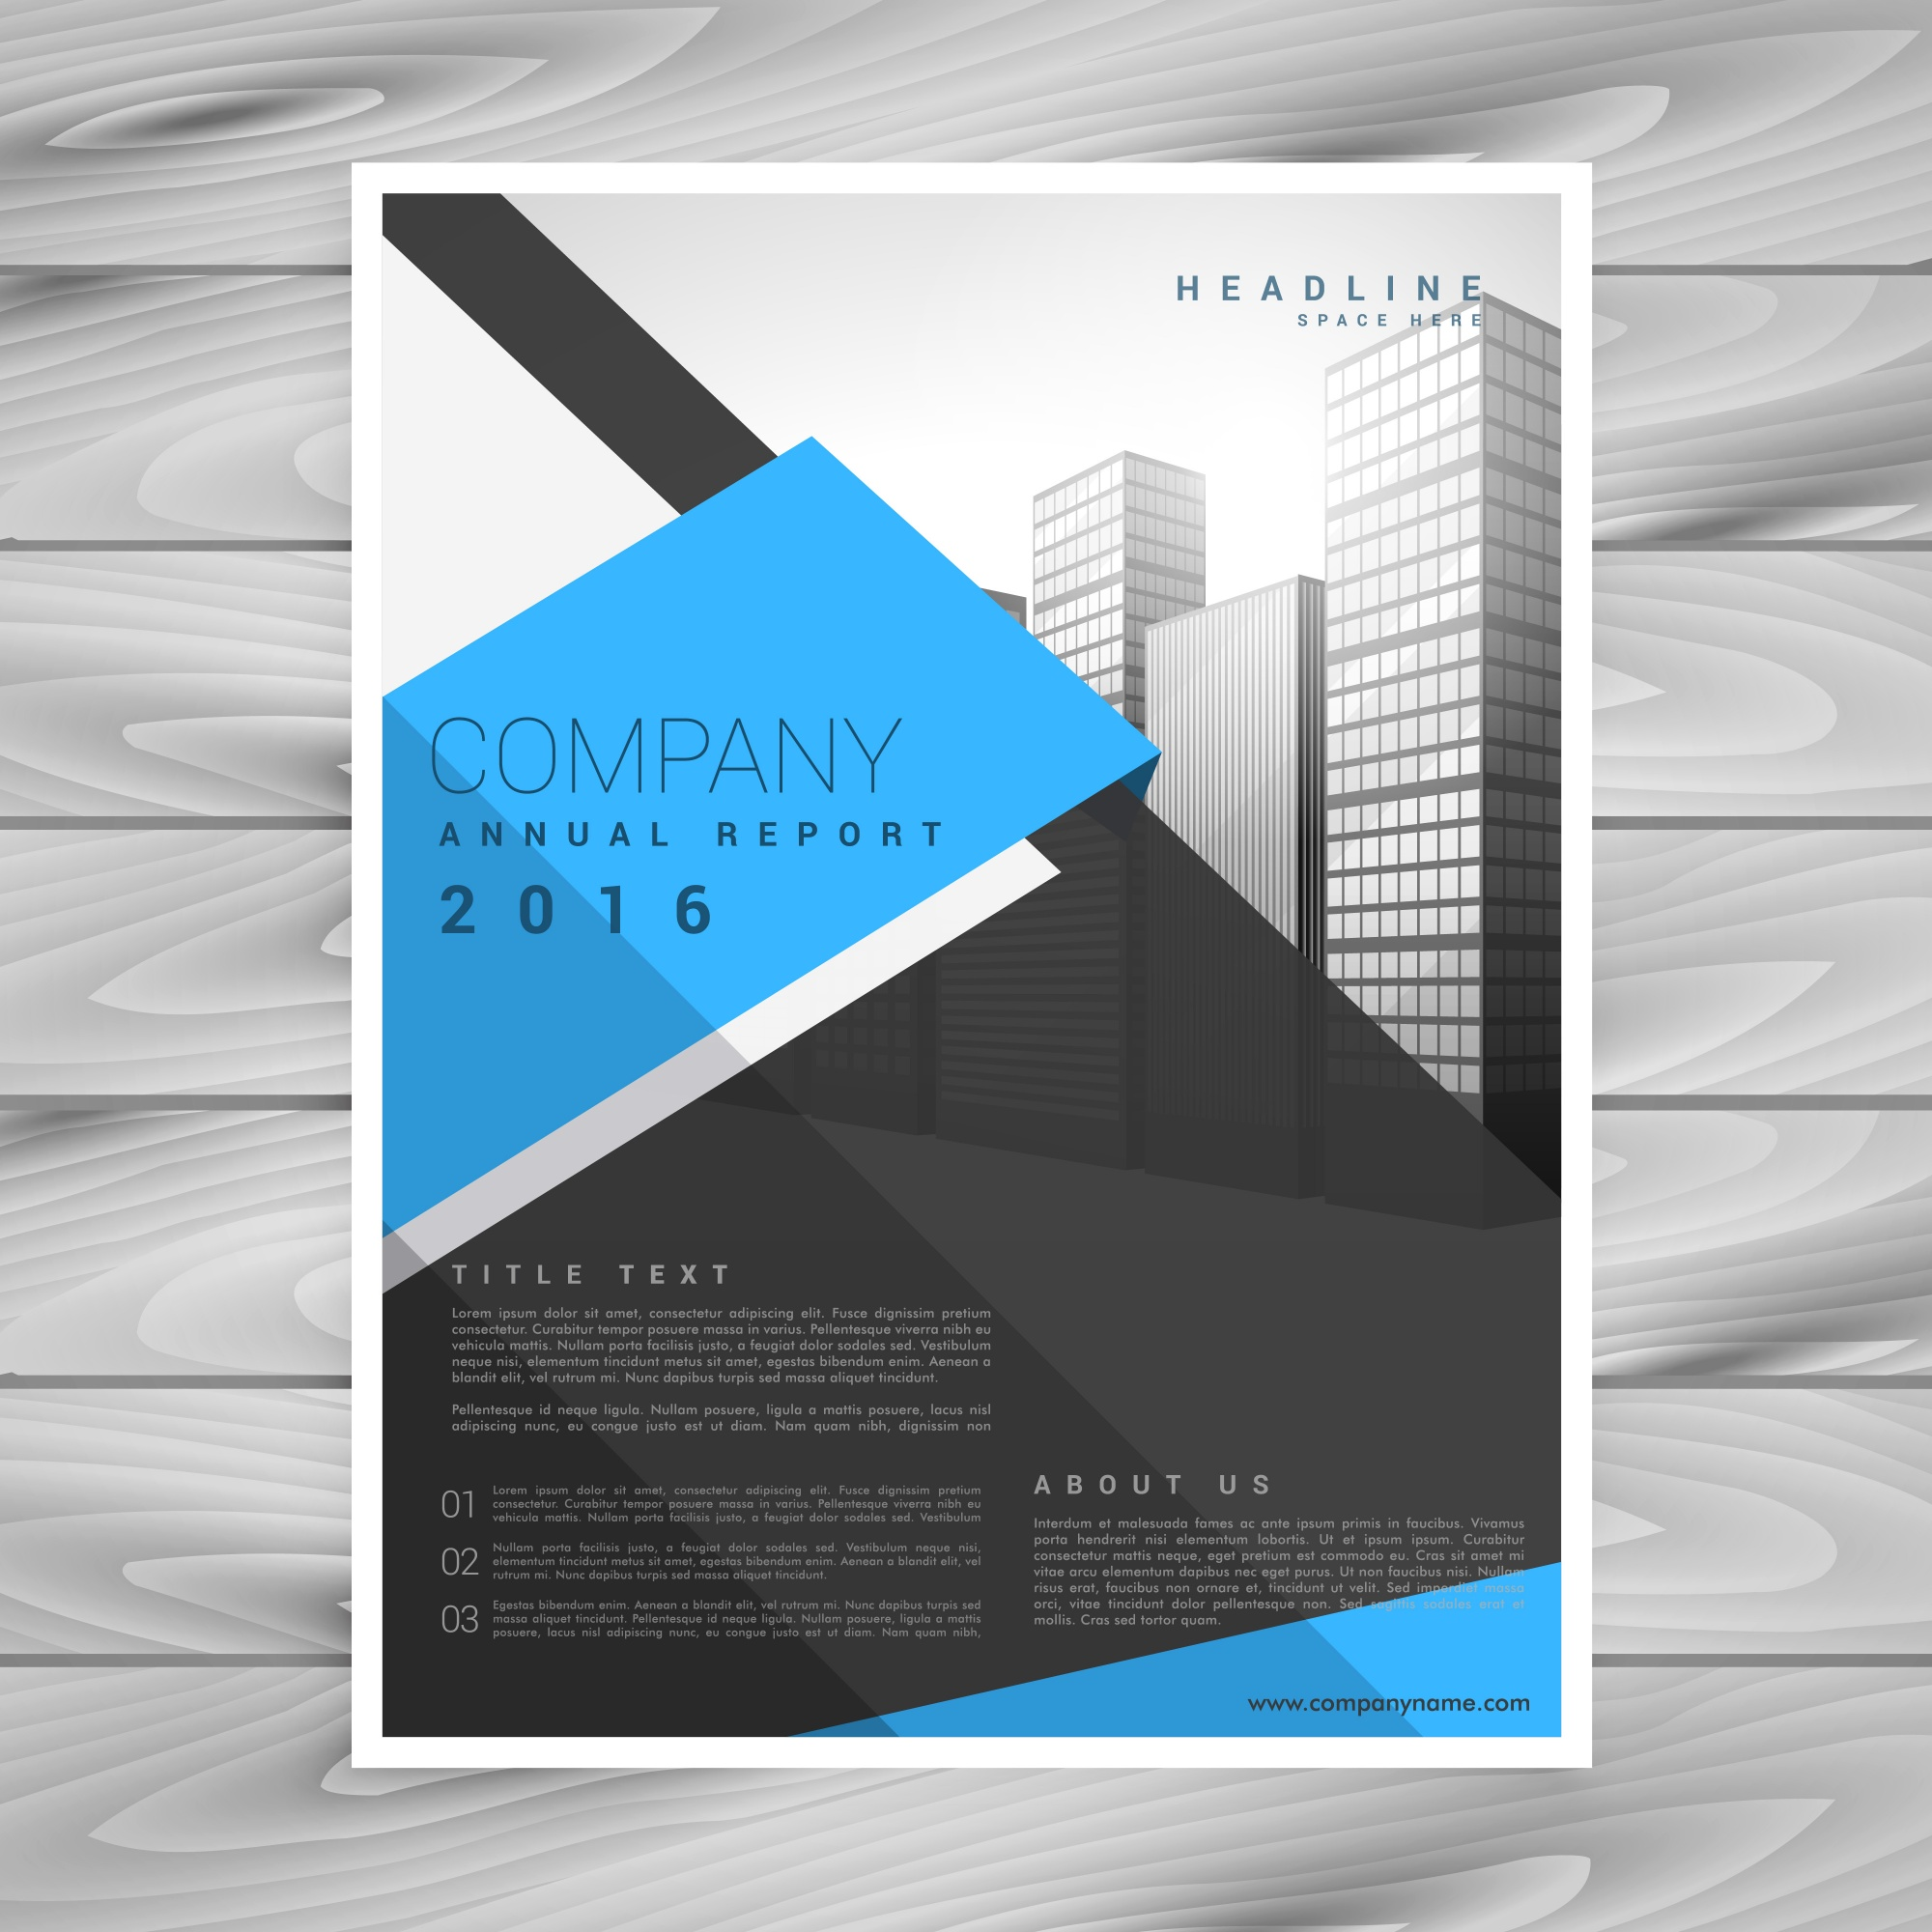 Modern business brochure design template in blue black geometric shapes